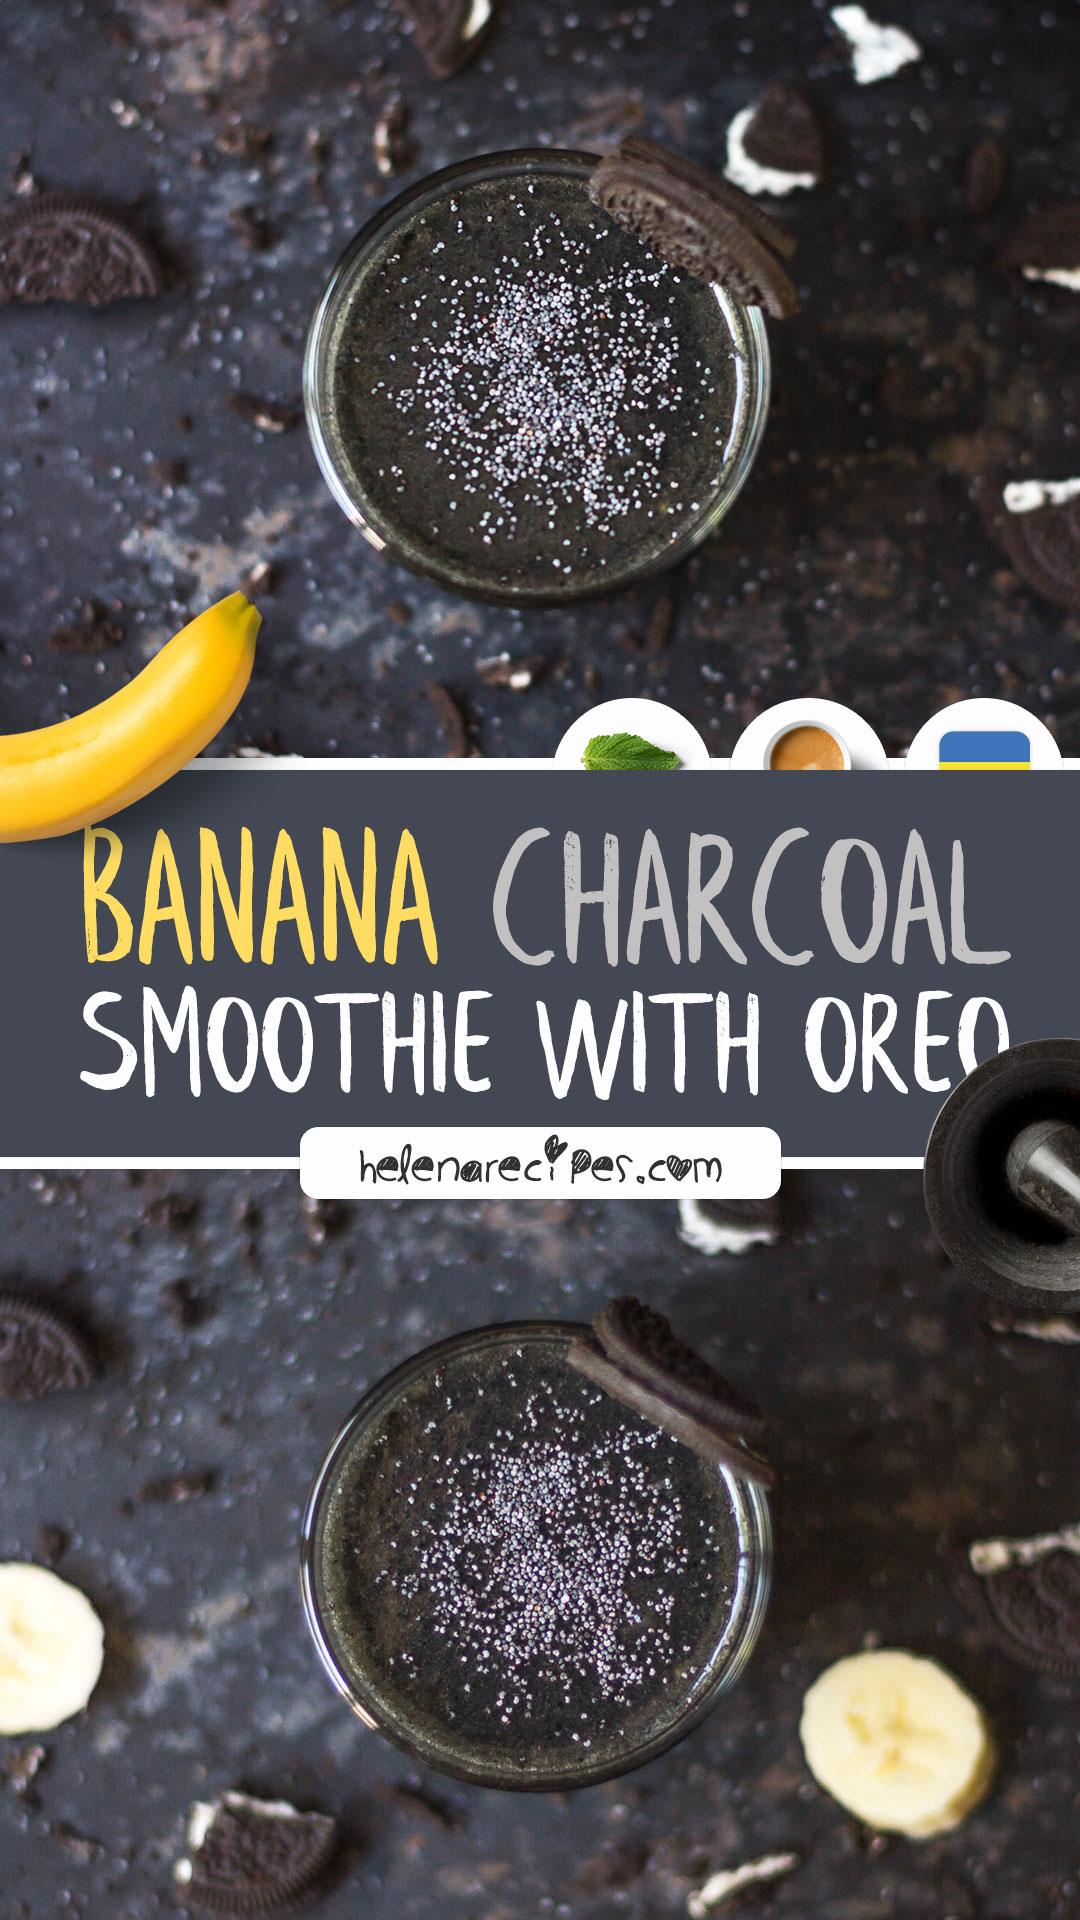 Banana Charcoal Smoothie with Oreo Recipe Connecting the Opposites